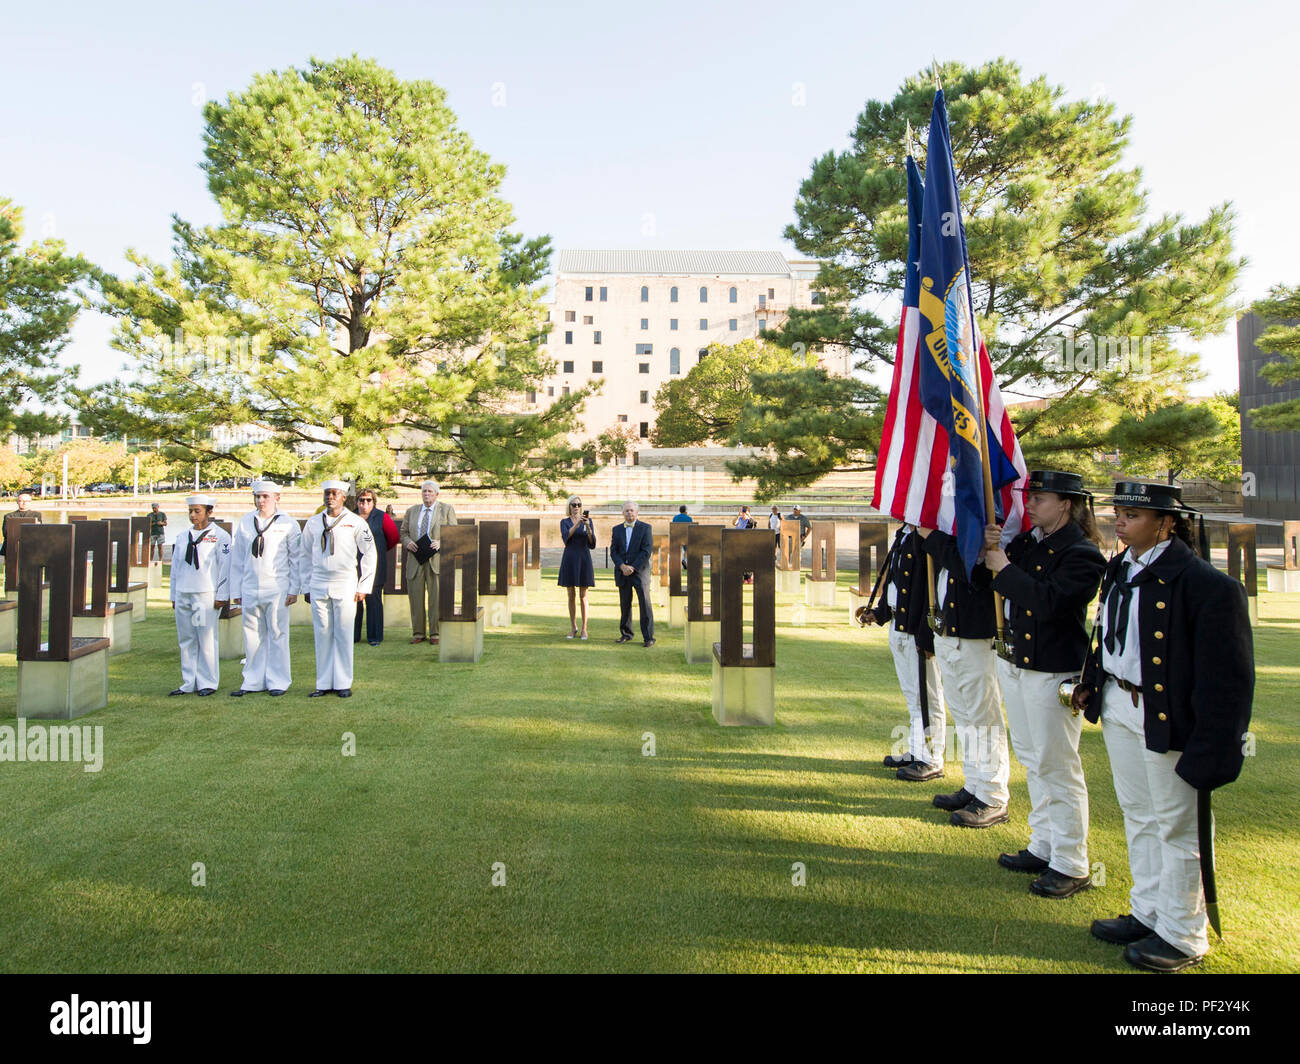 170919-N-KB426-024  OKLAHOMA CITY (Sept. 19, 2017) Sailors assigned to Navy Operational Support Center Oklahoma City and the USS Constitution honor Legalman 1st Class Kimberly Kay Clark during a wreath laying ceremony at the Oklahoma City National Memorial and Museum as part of Navy Week Oklahoma City. A Navy Reservist, Clark was among the 168 killed April 19, 1995 during the Oklahoma City bombing. Navy Week programs serve as the principal outreach effort into areas of the country without a significant Navy presence, helping Americans understand that their Navy is deployed around the world, ar Stock Photo